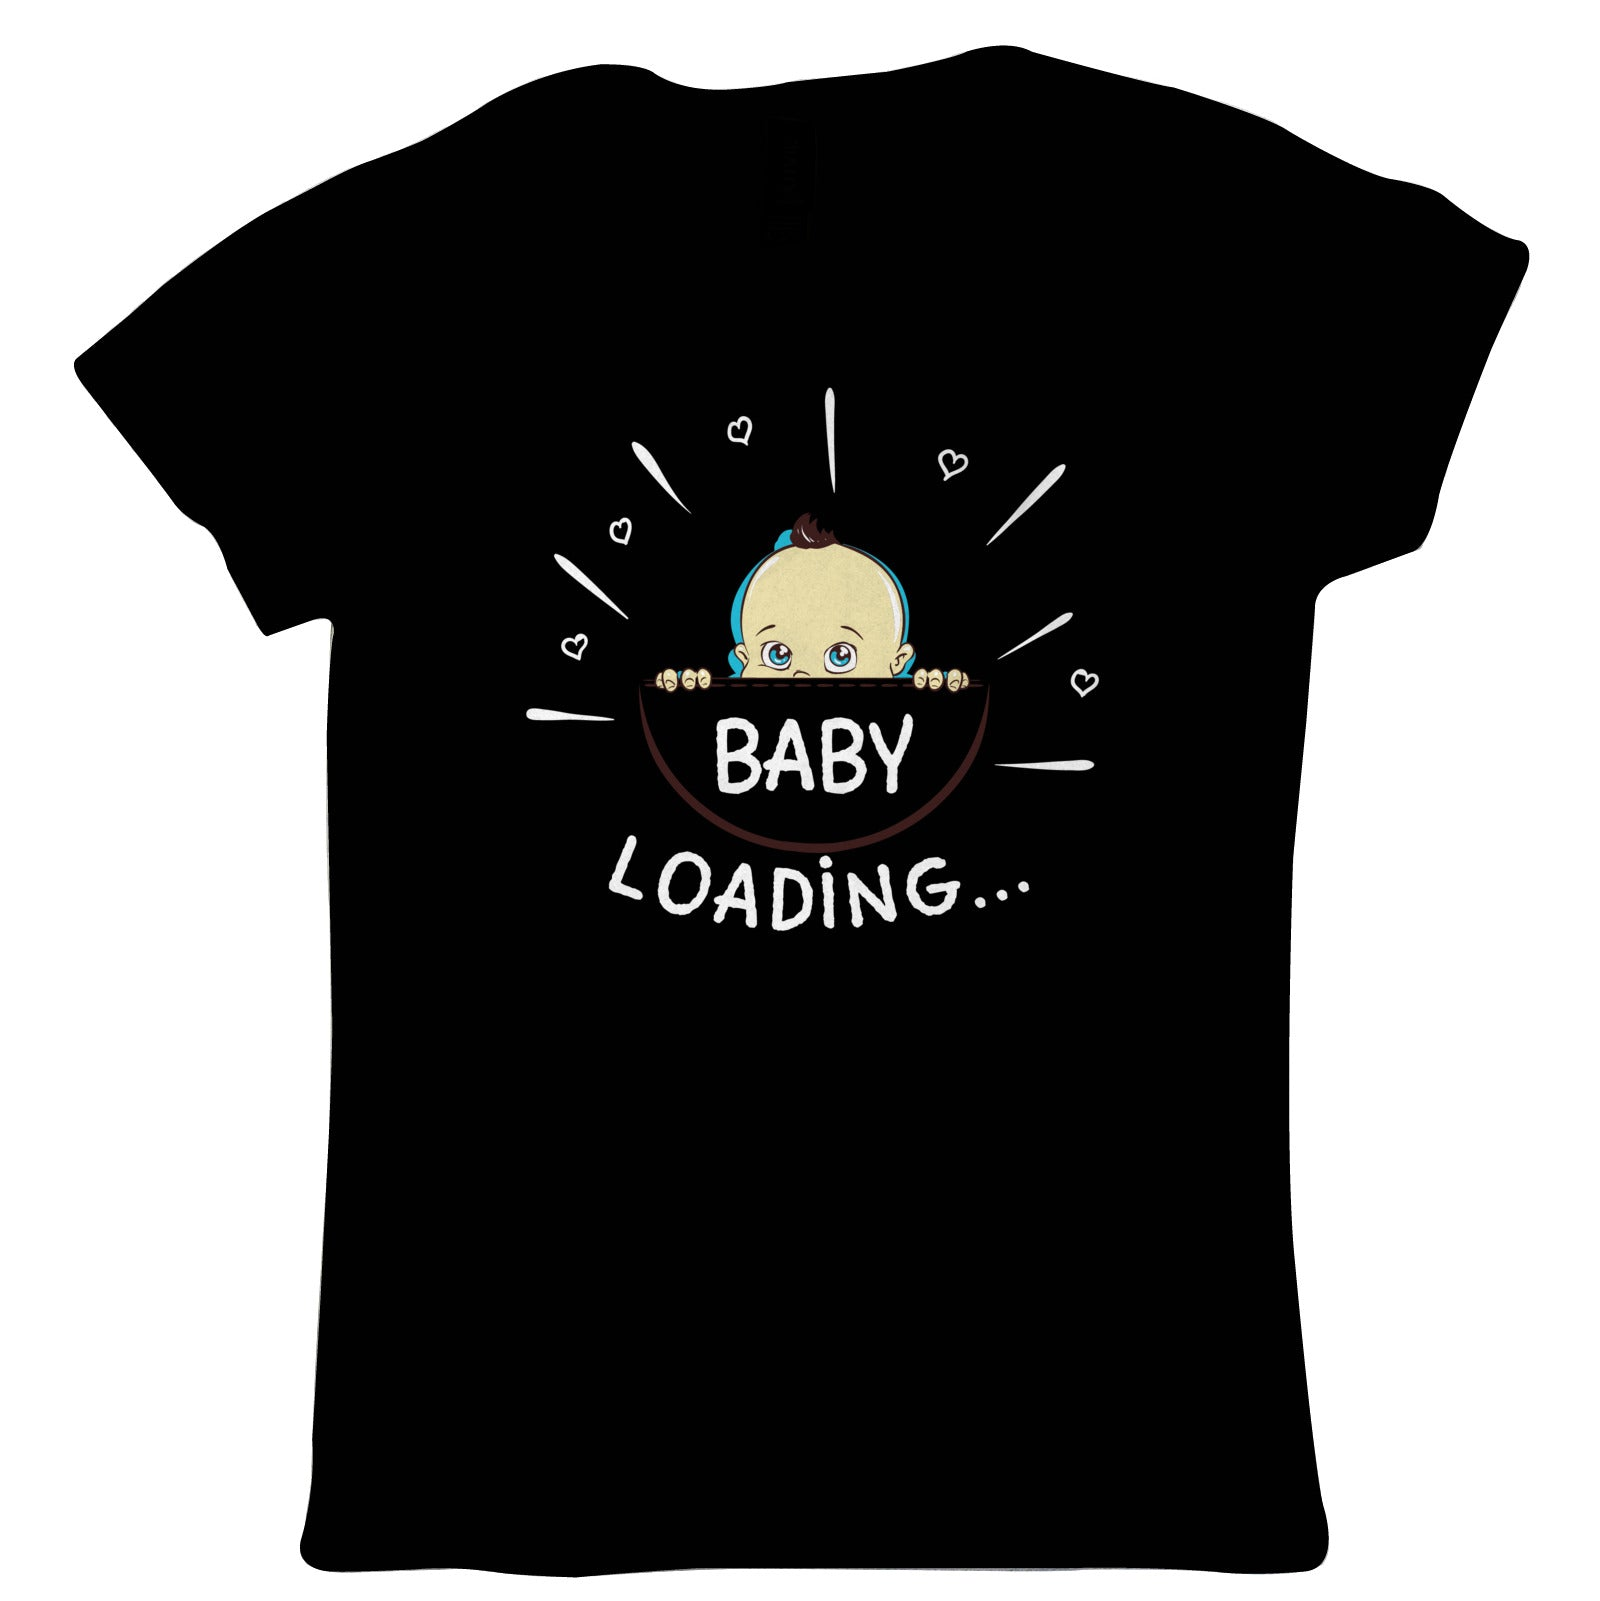 Baby Loading, Mother to Be Womens Funny T Shirt | Funny Novelty Perfect Gift Present For Mum Mom Mama Ladies | Mothers Day Birthday Christmas from Daughter Son Grandson